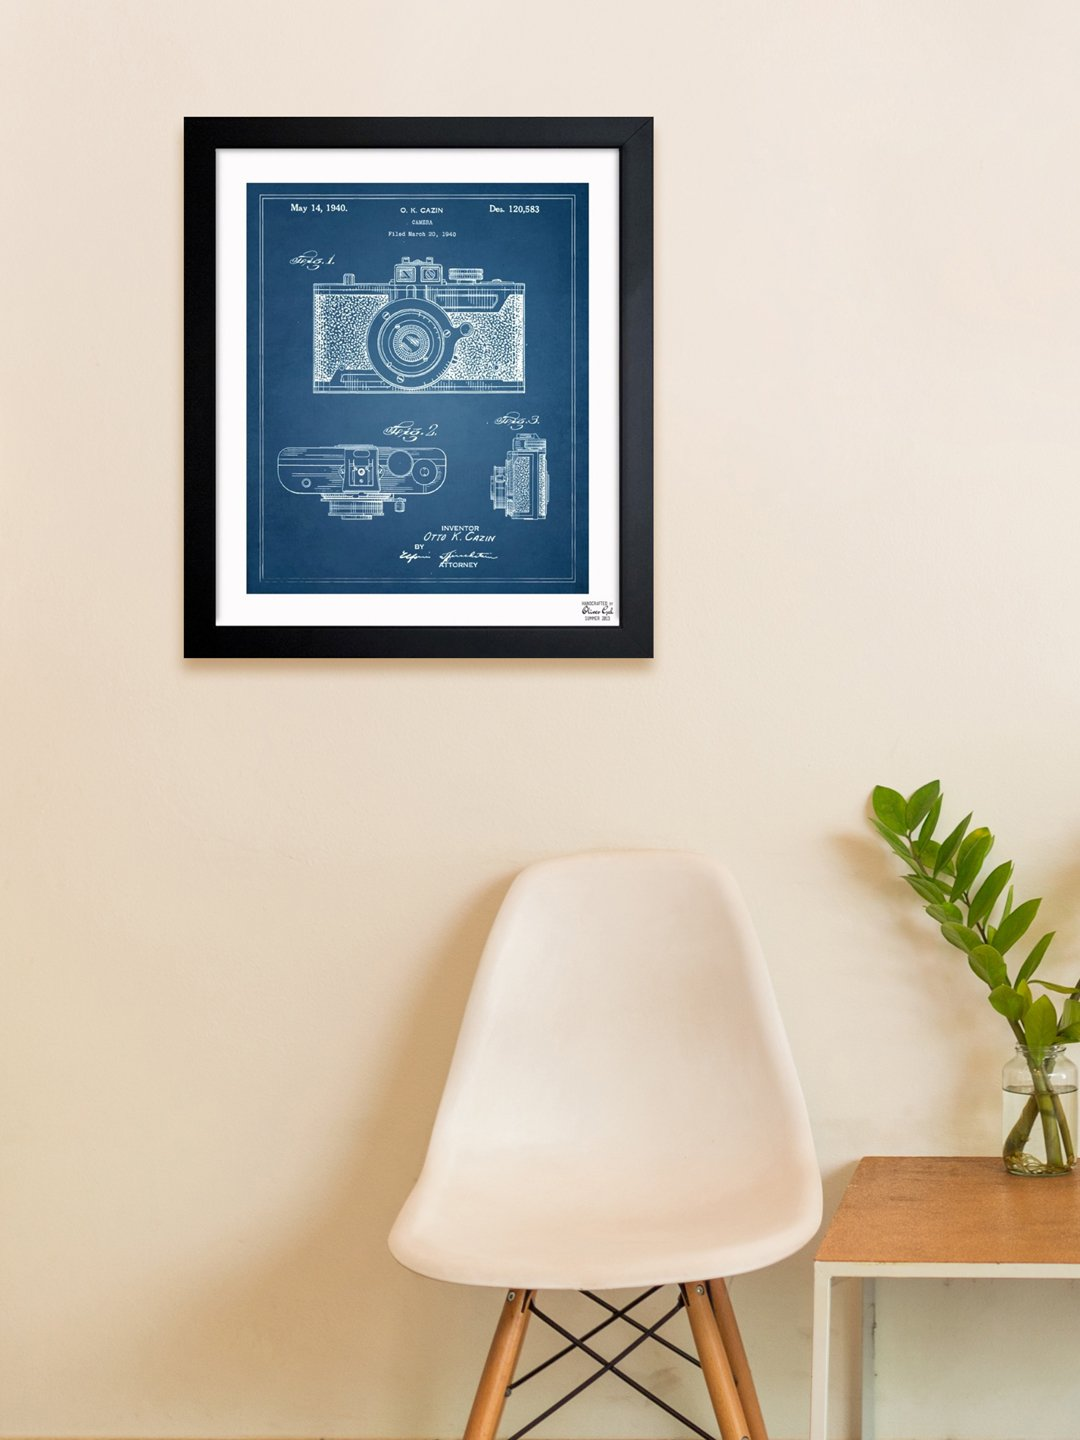 Amazon.com: Cazin Design for a Camera 1940 Vintage Framed Wall Art Print for Home decor & Office. The Photography Wall Decor Blueprint Collection by Oliver ...